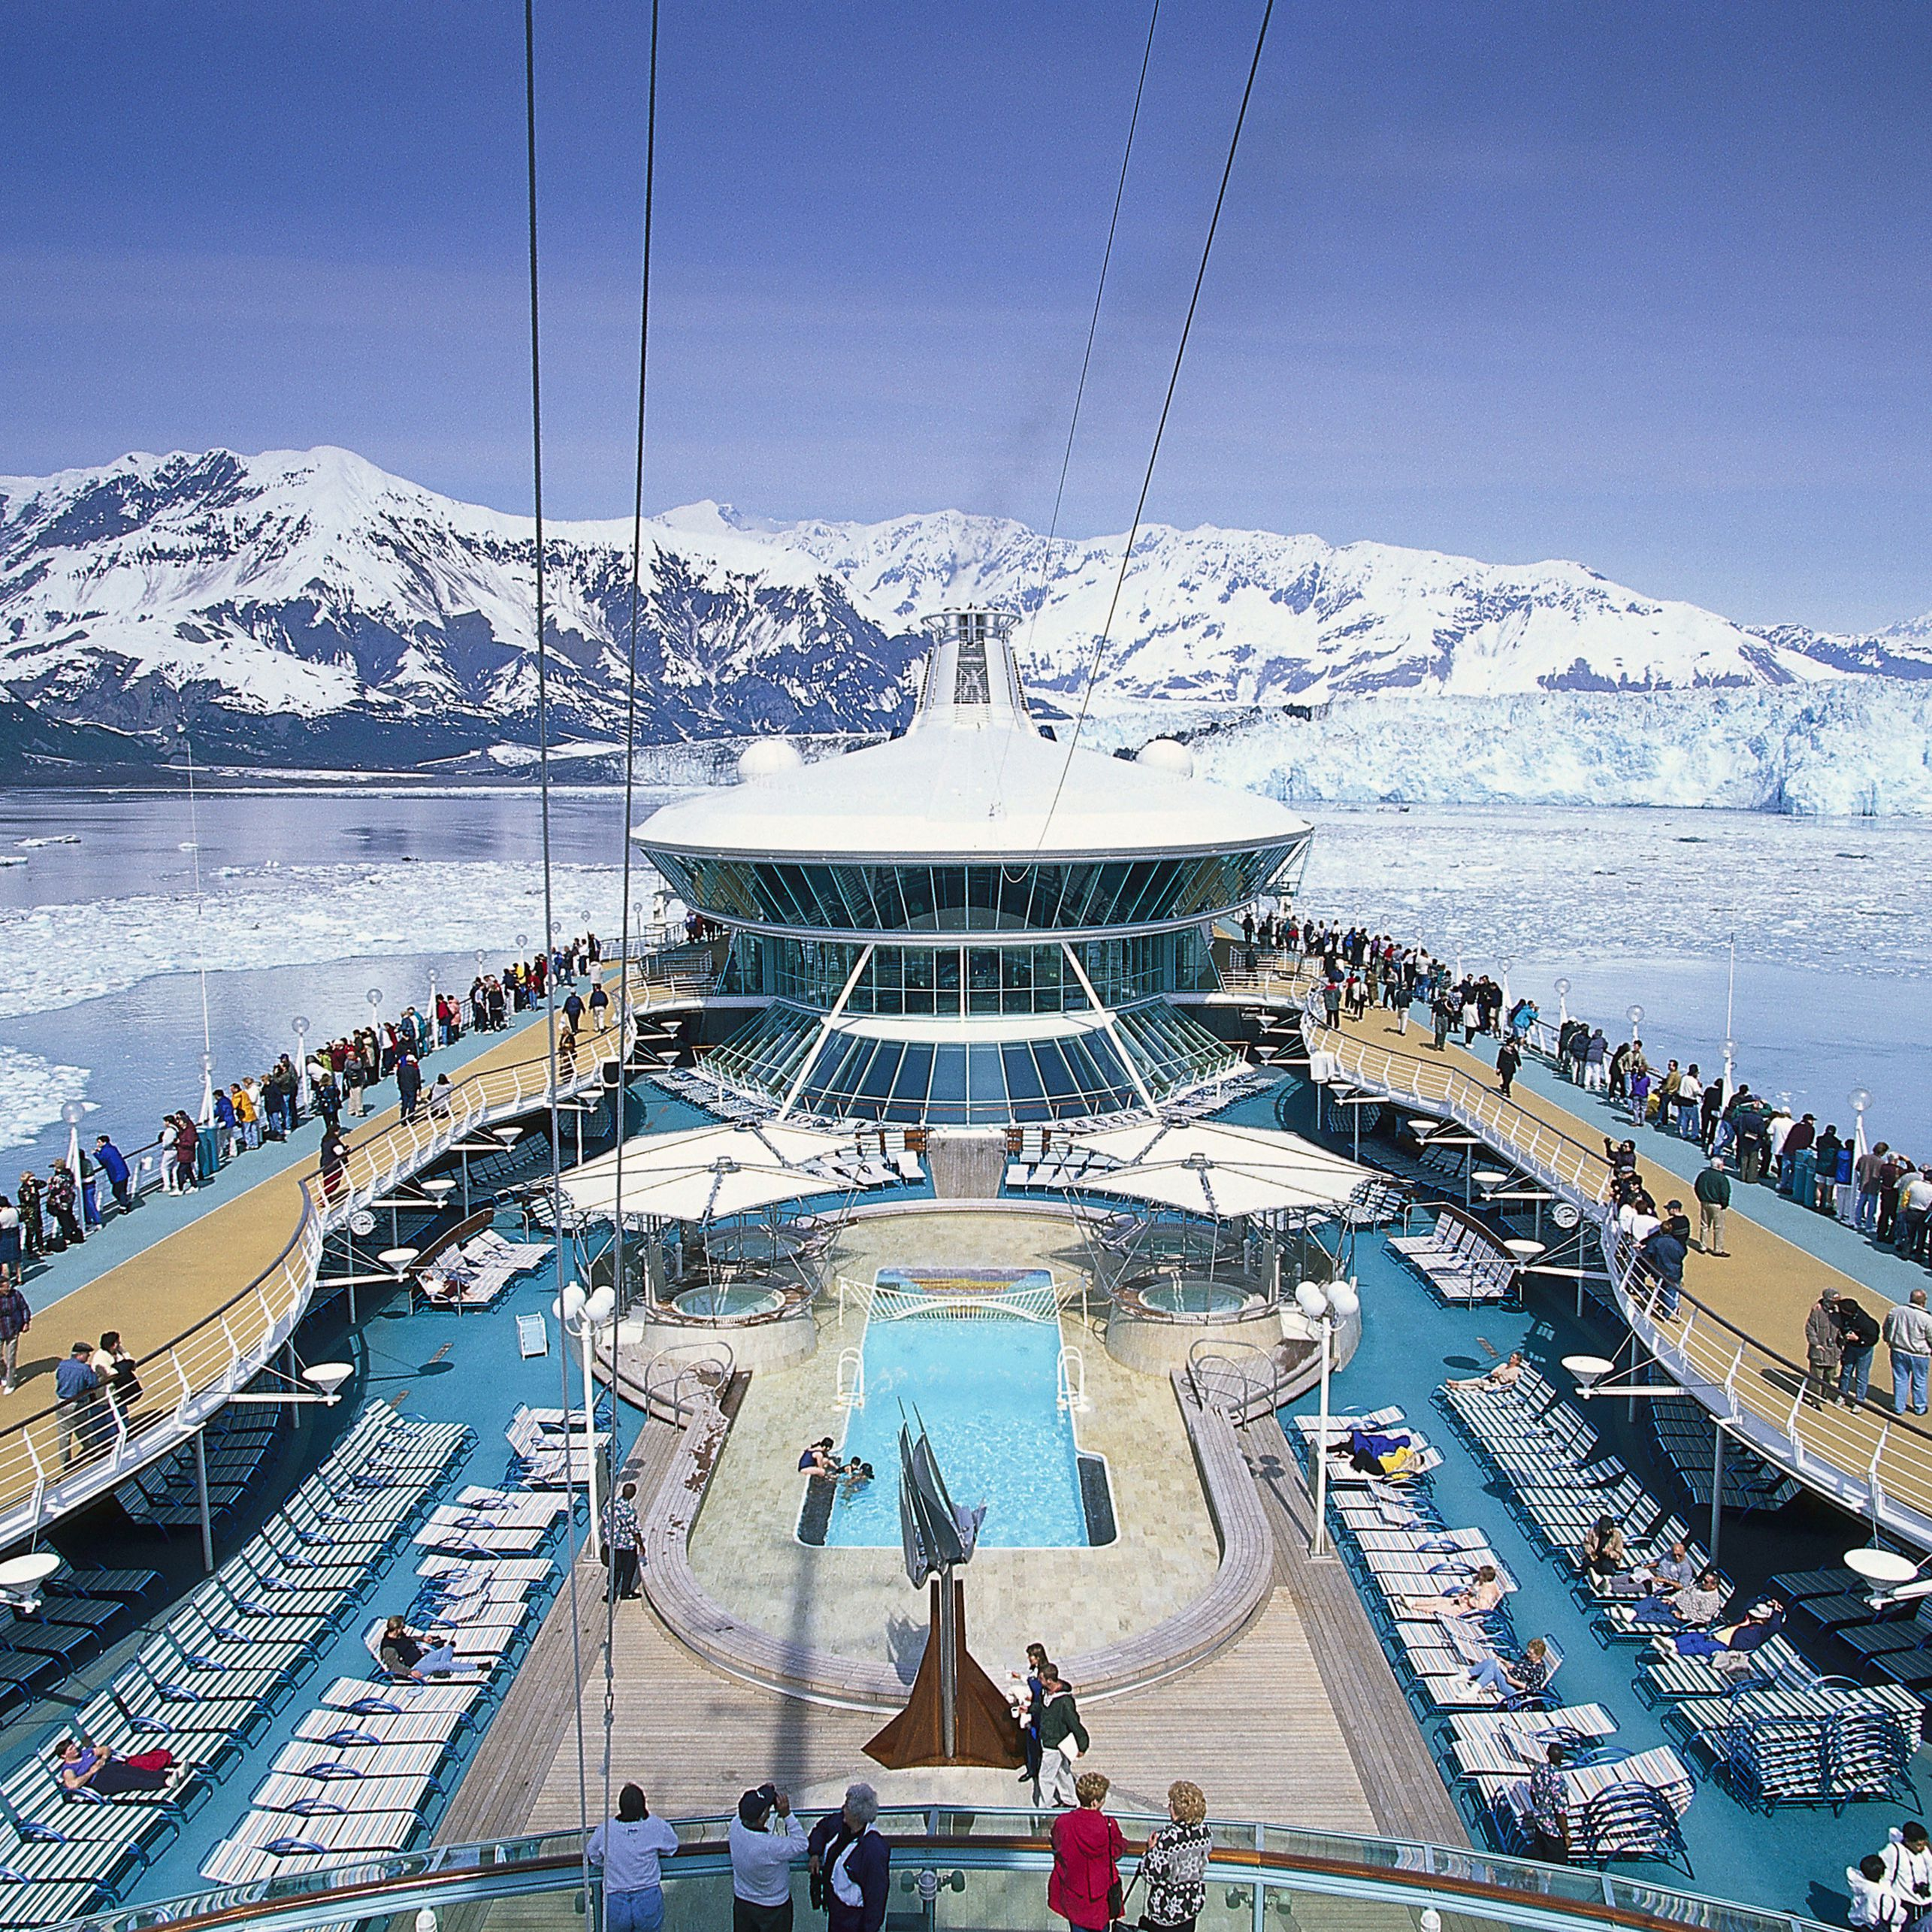 Want Less Crowds and More Wildlife on Your Alaska Cruise? Go Small.